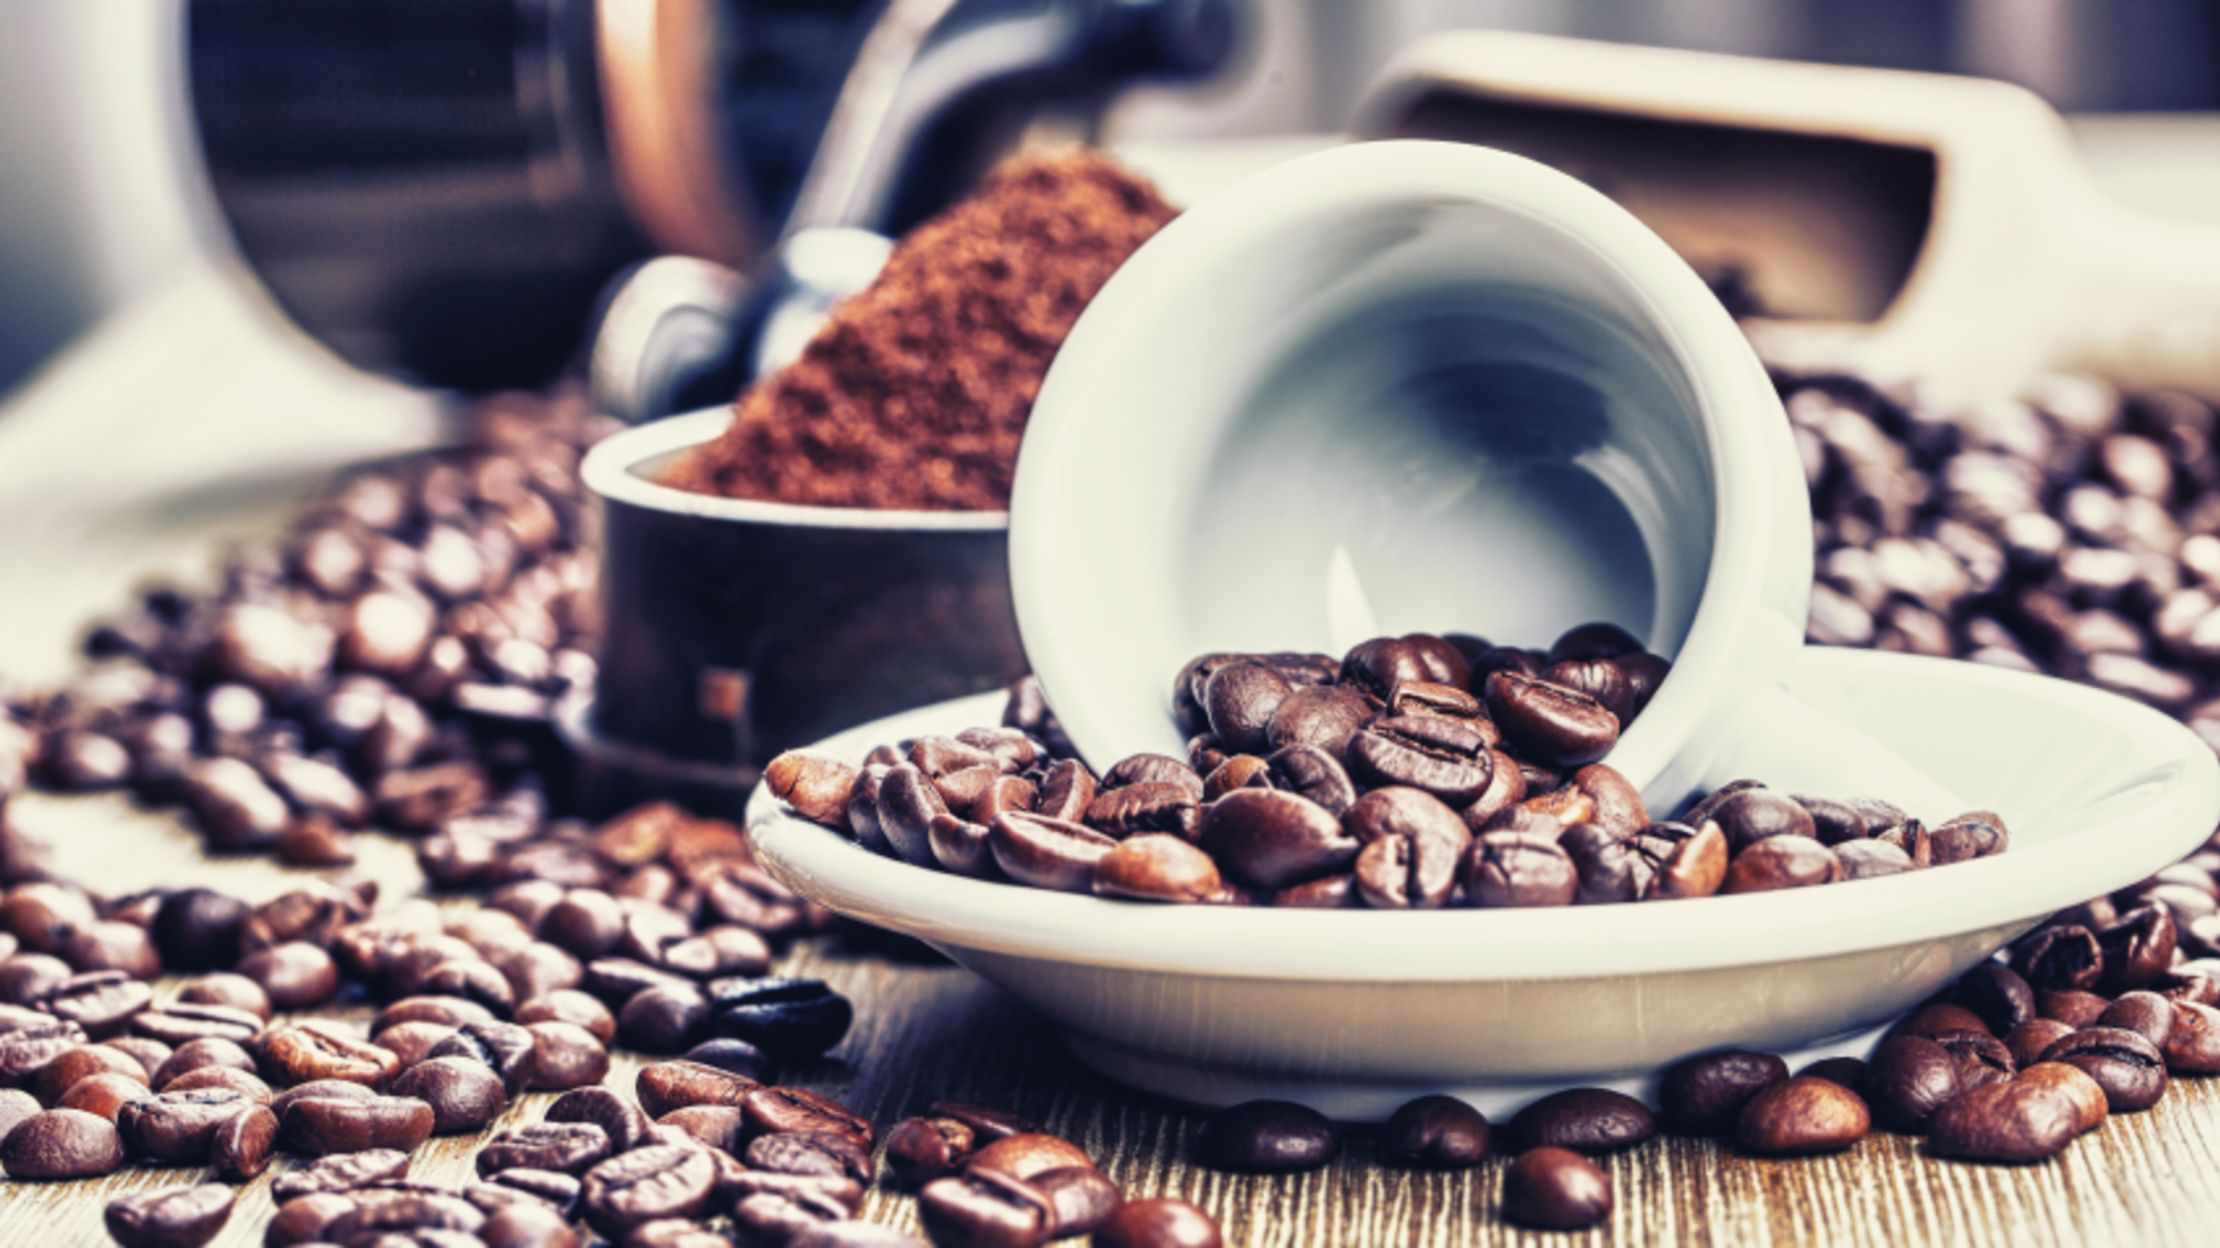 National Coffee Day: Recipes, Products, and More